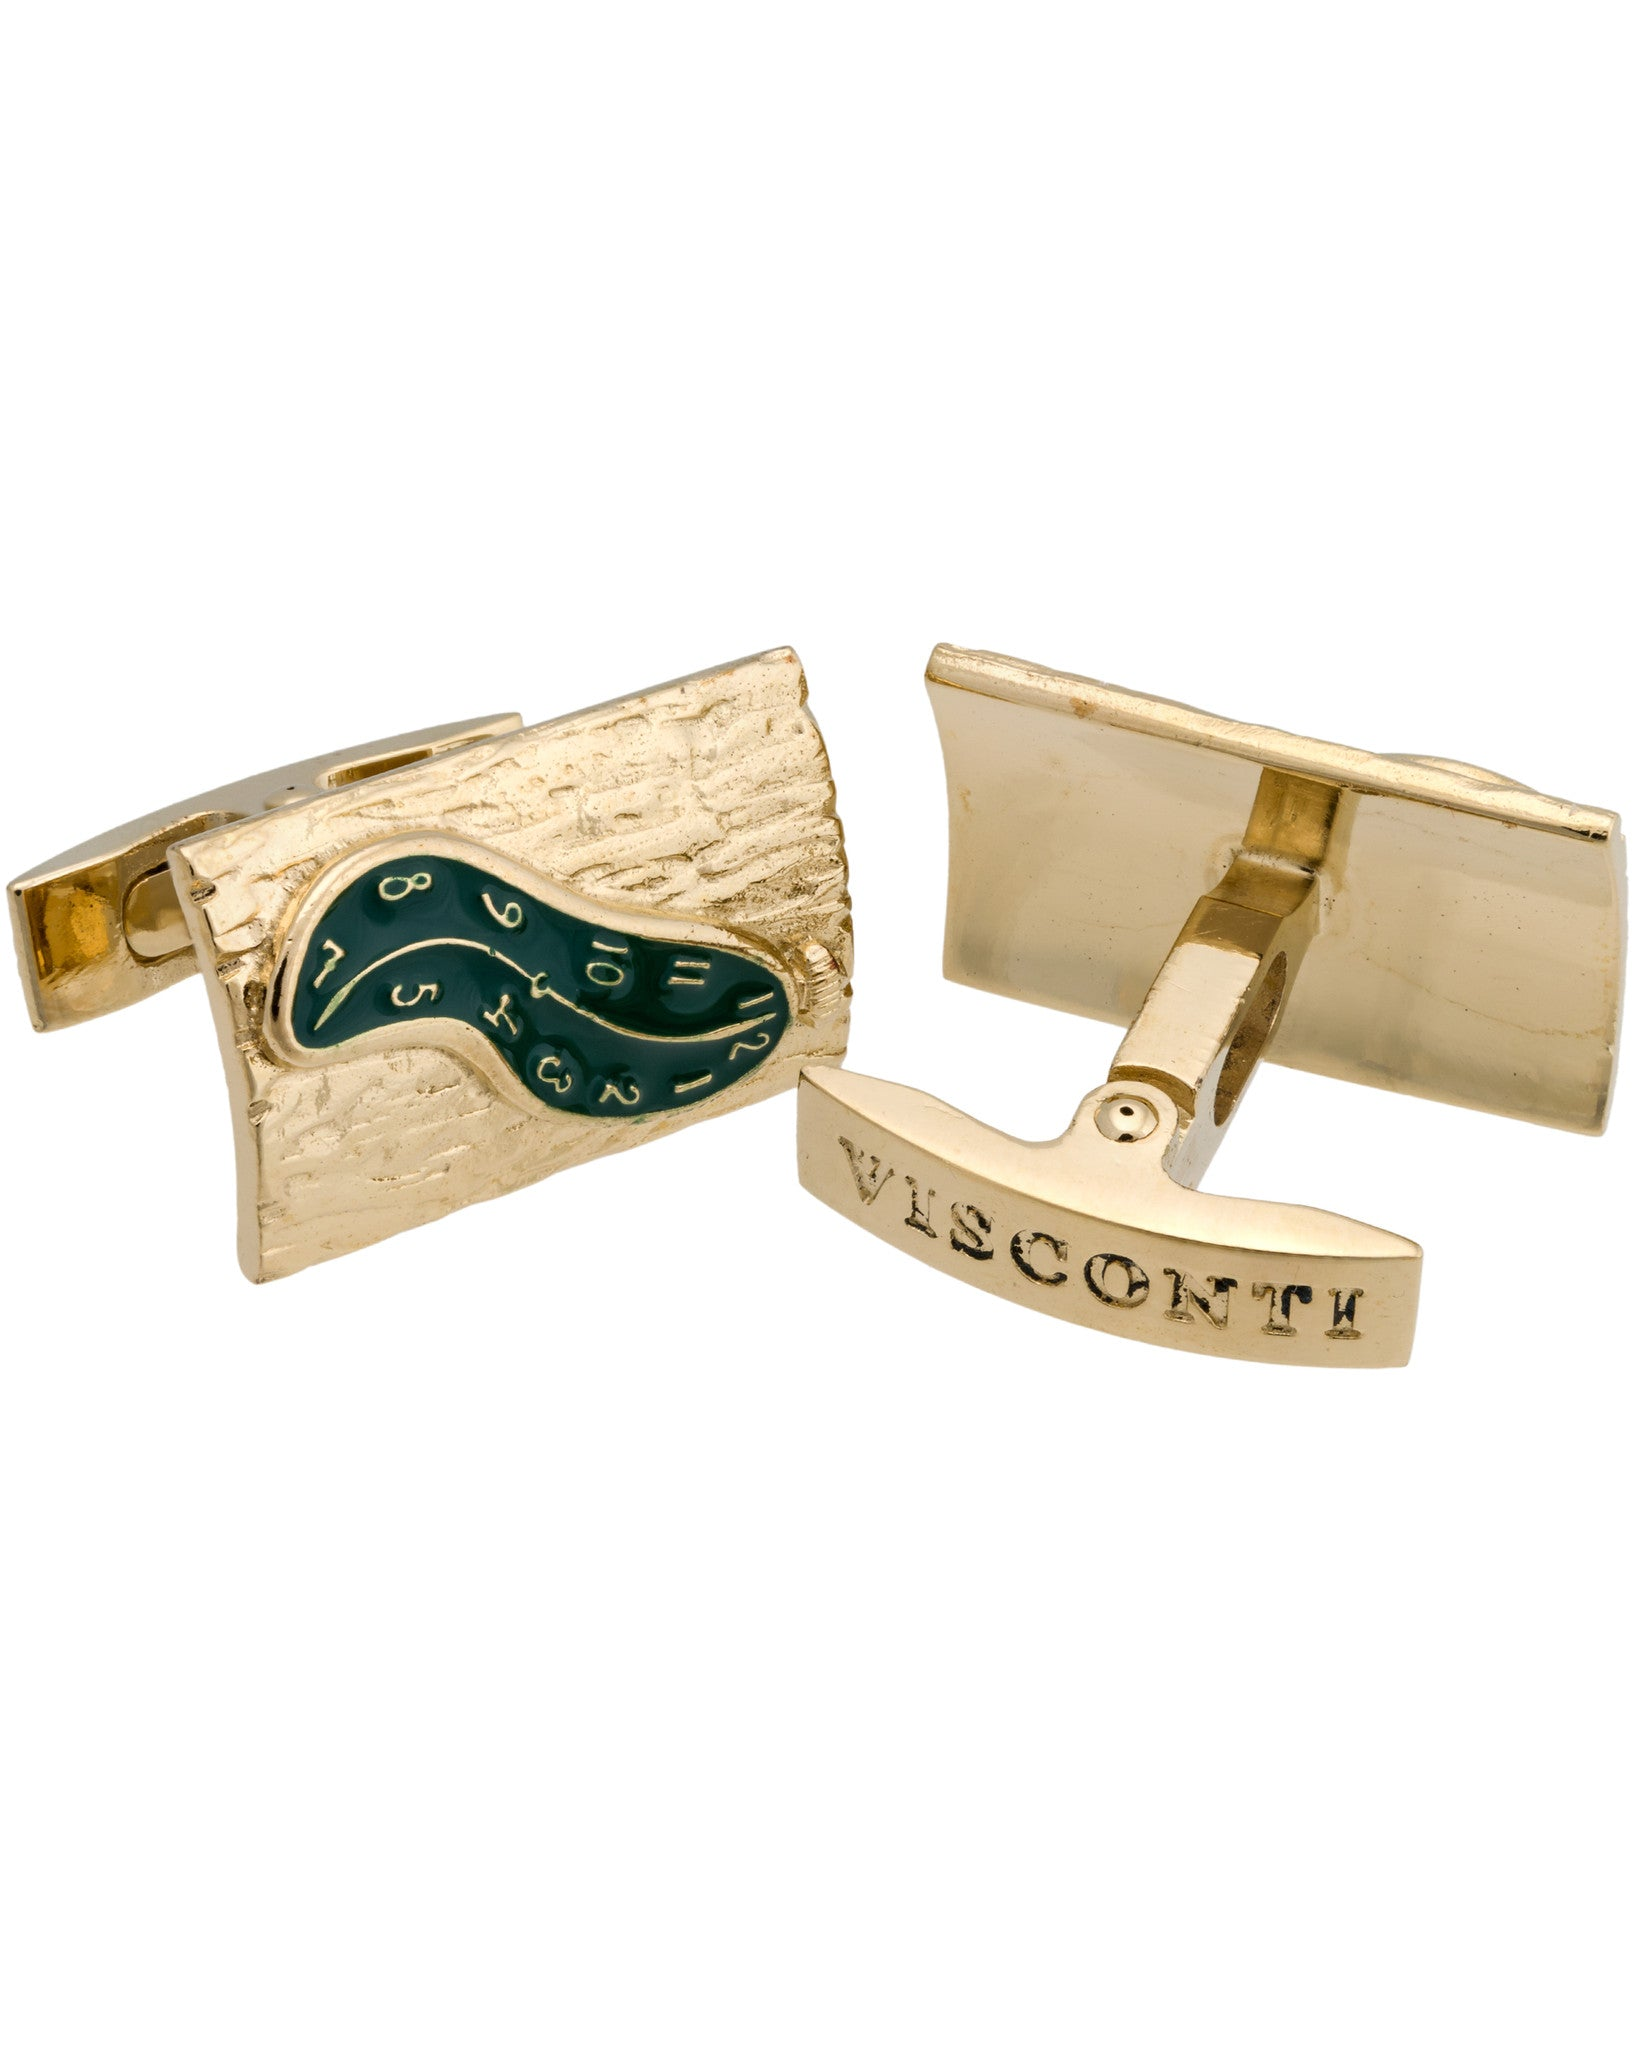 Cufflinks Dali Green Enamel Gold Trims N81 Metal Gold Plated